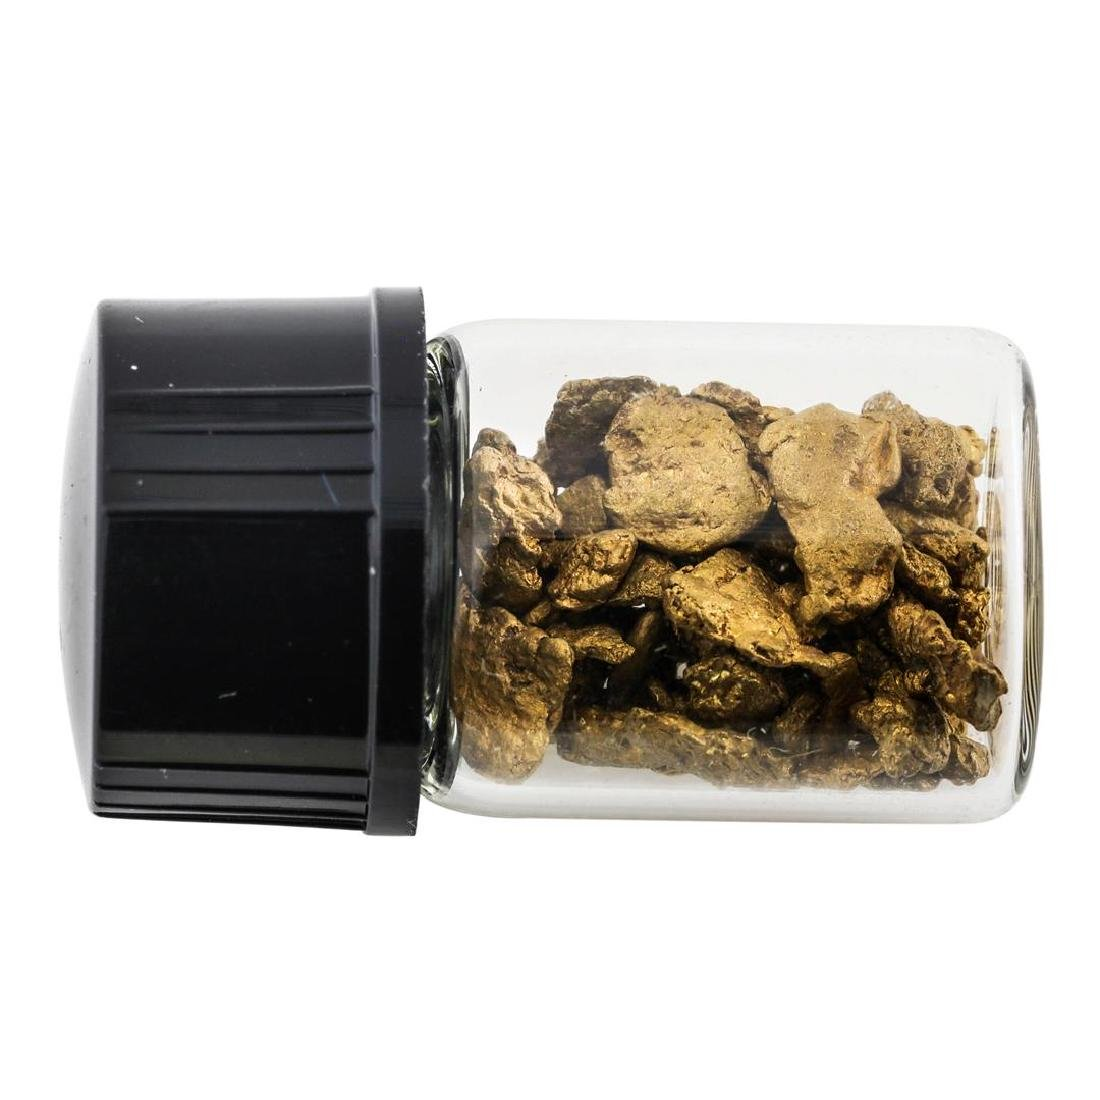 Lot of Gold Nuggets 9.4 grams Total Weight